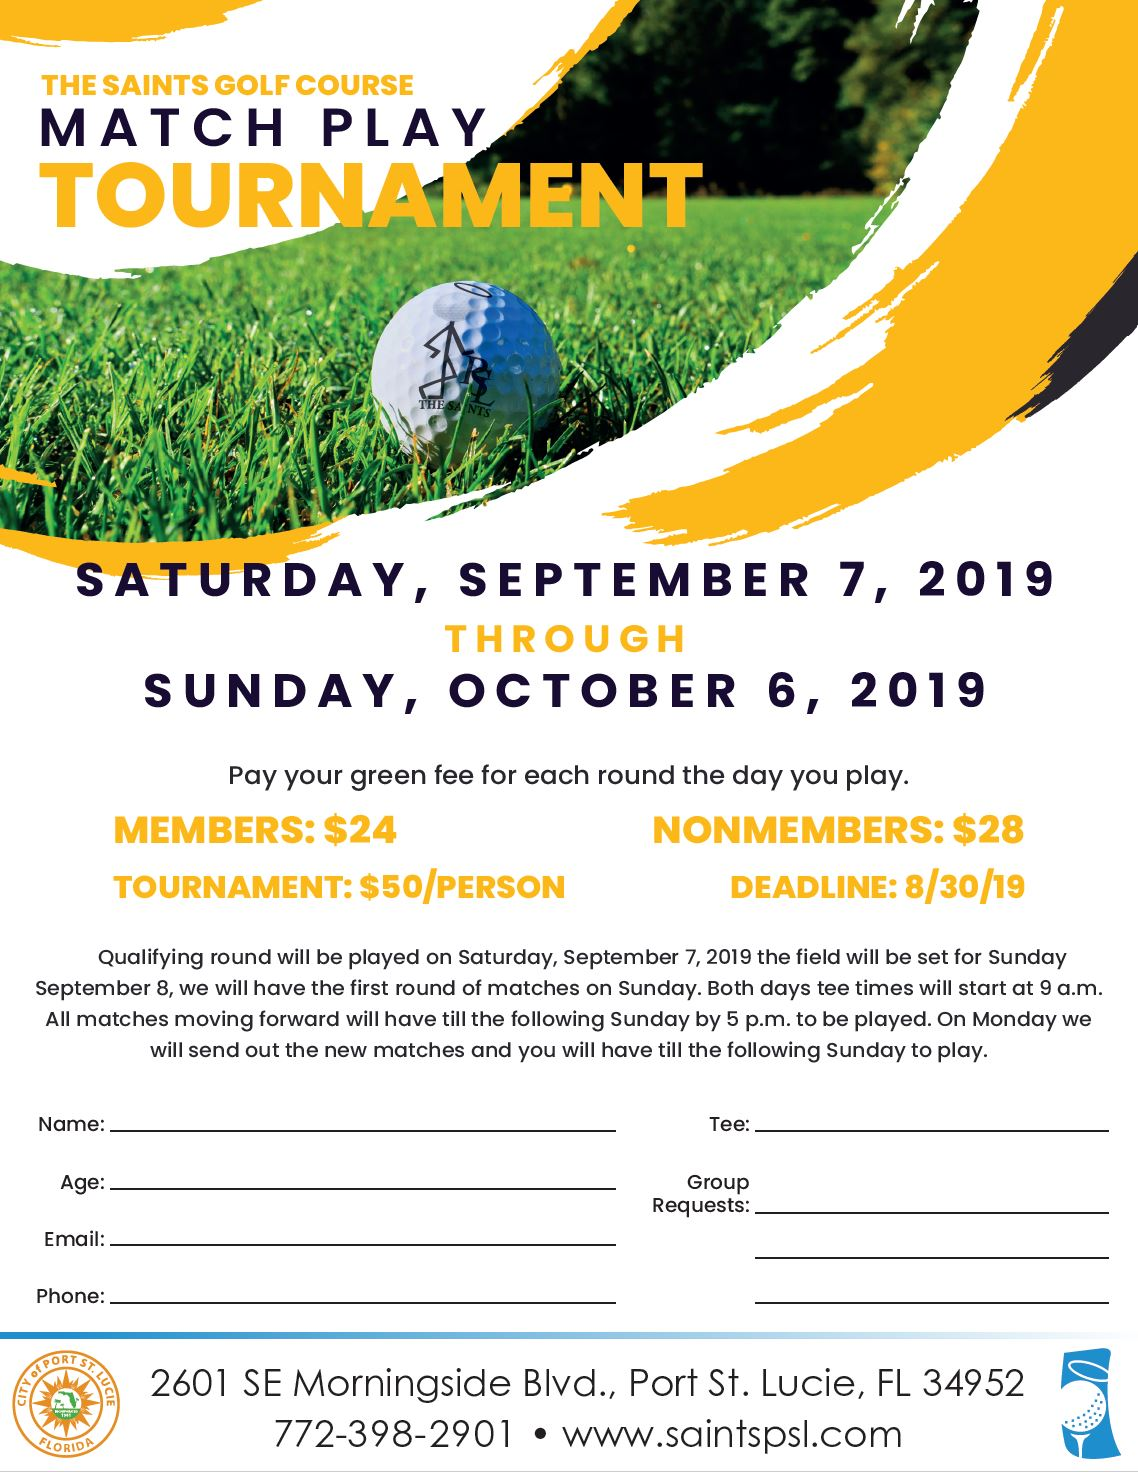 Match Play Flyer and Registration Form